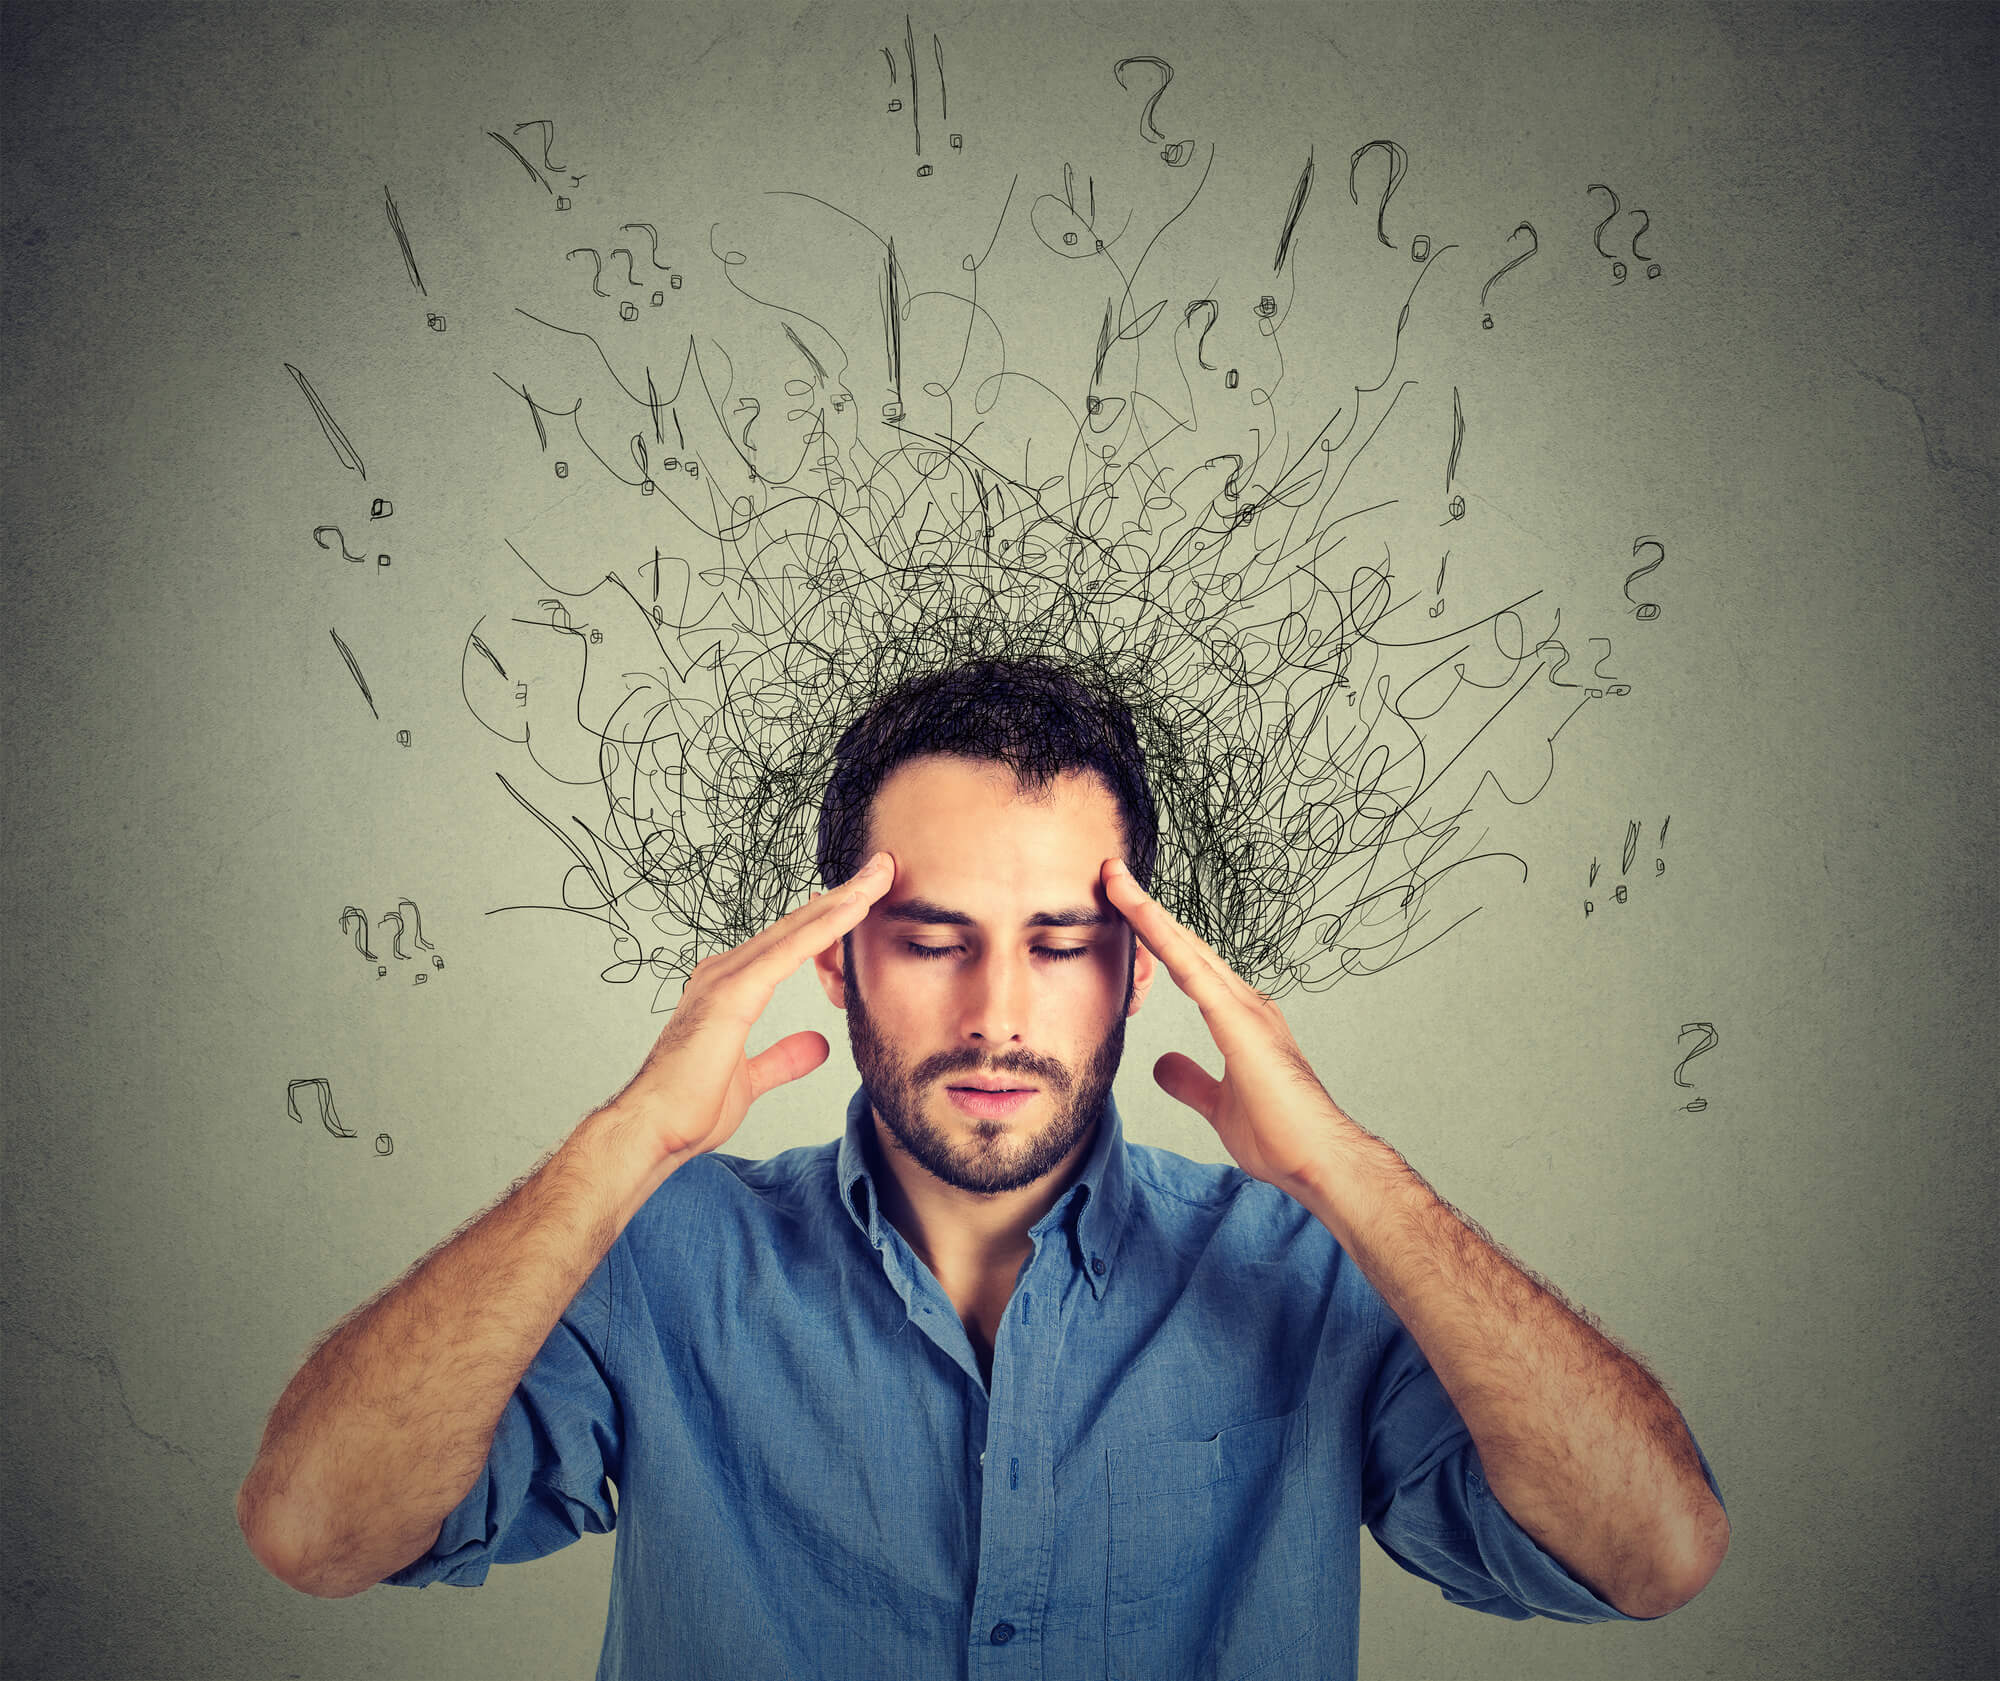 stressed man trying to think hard